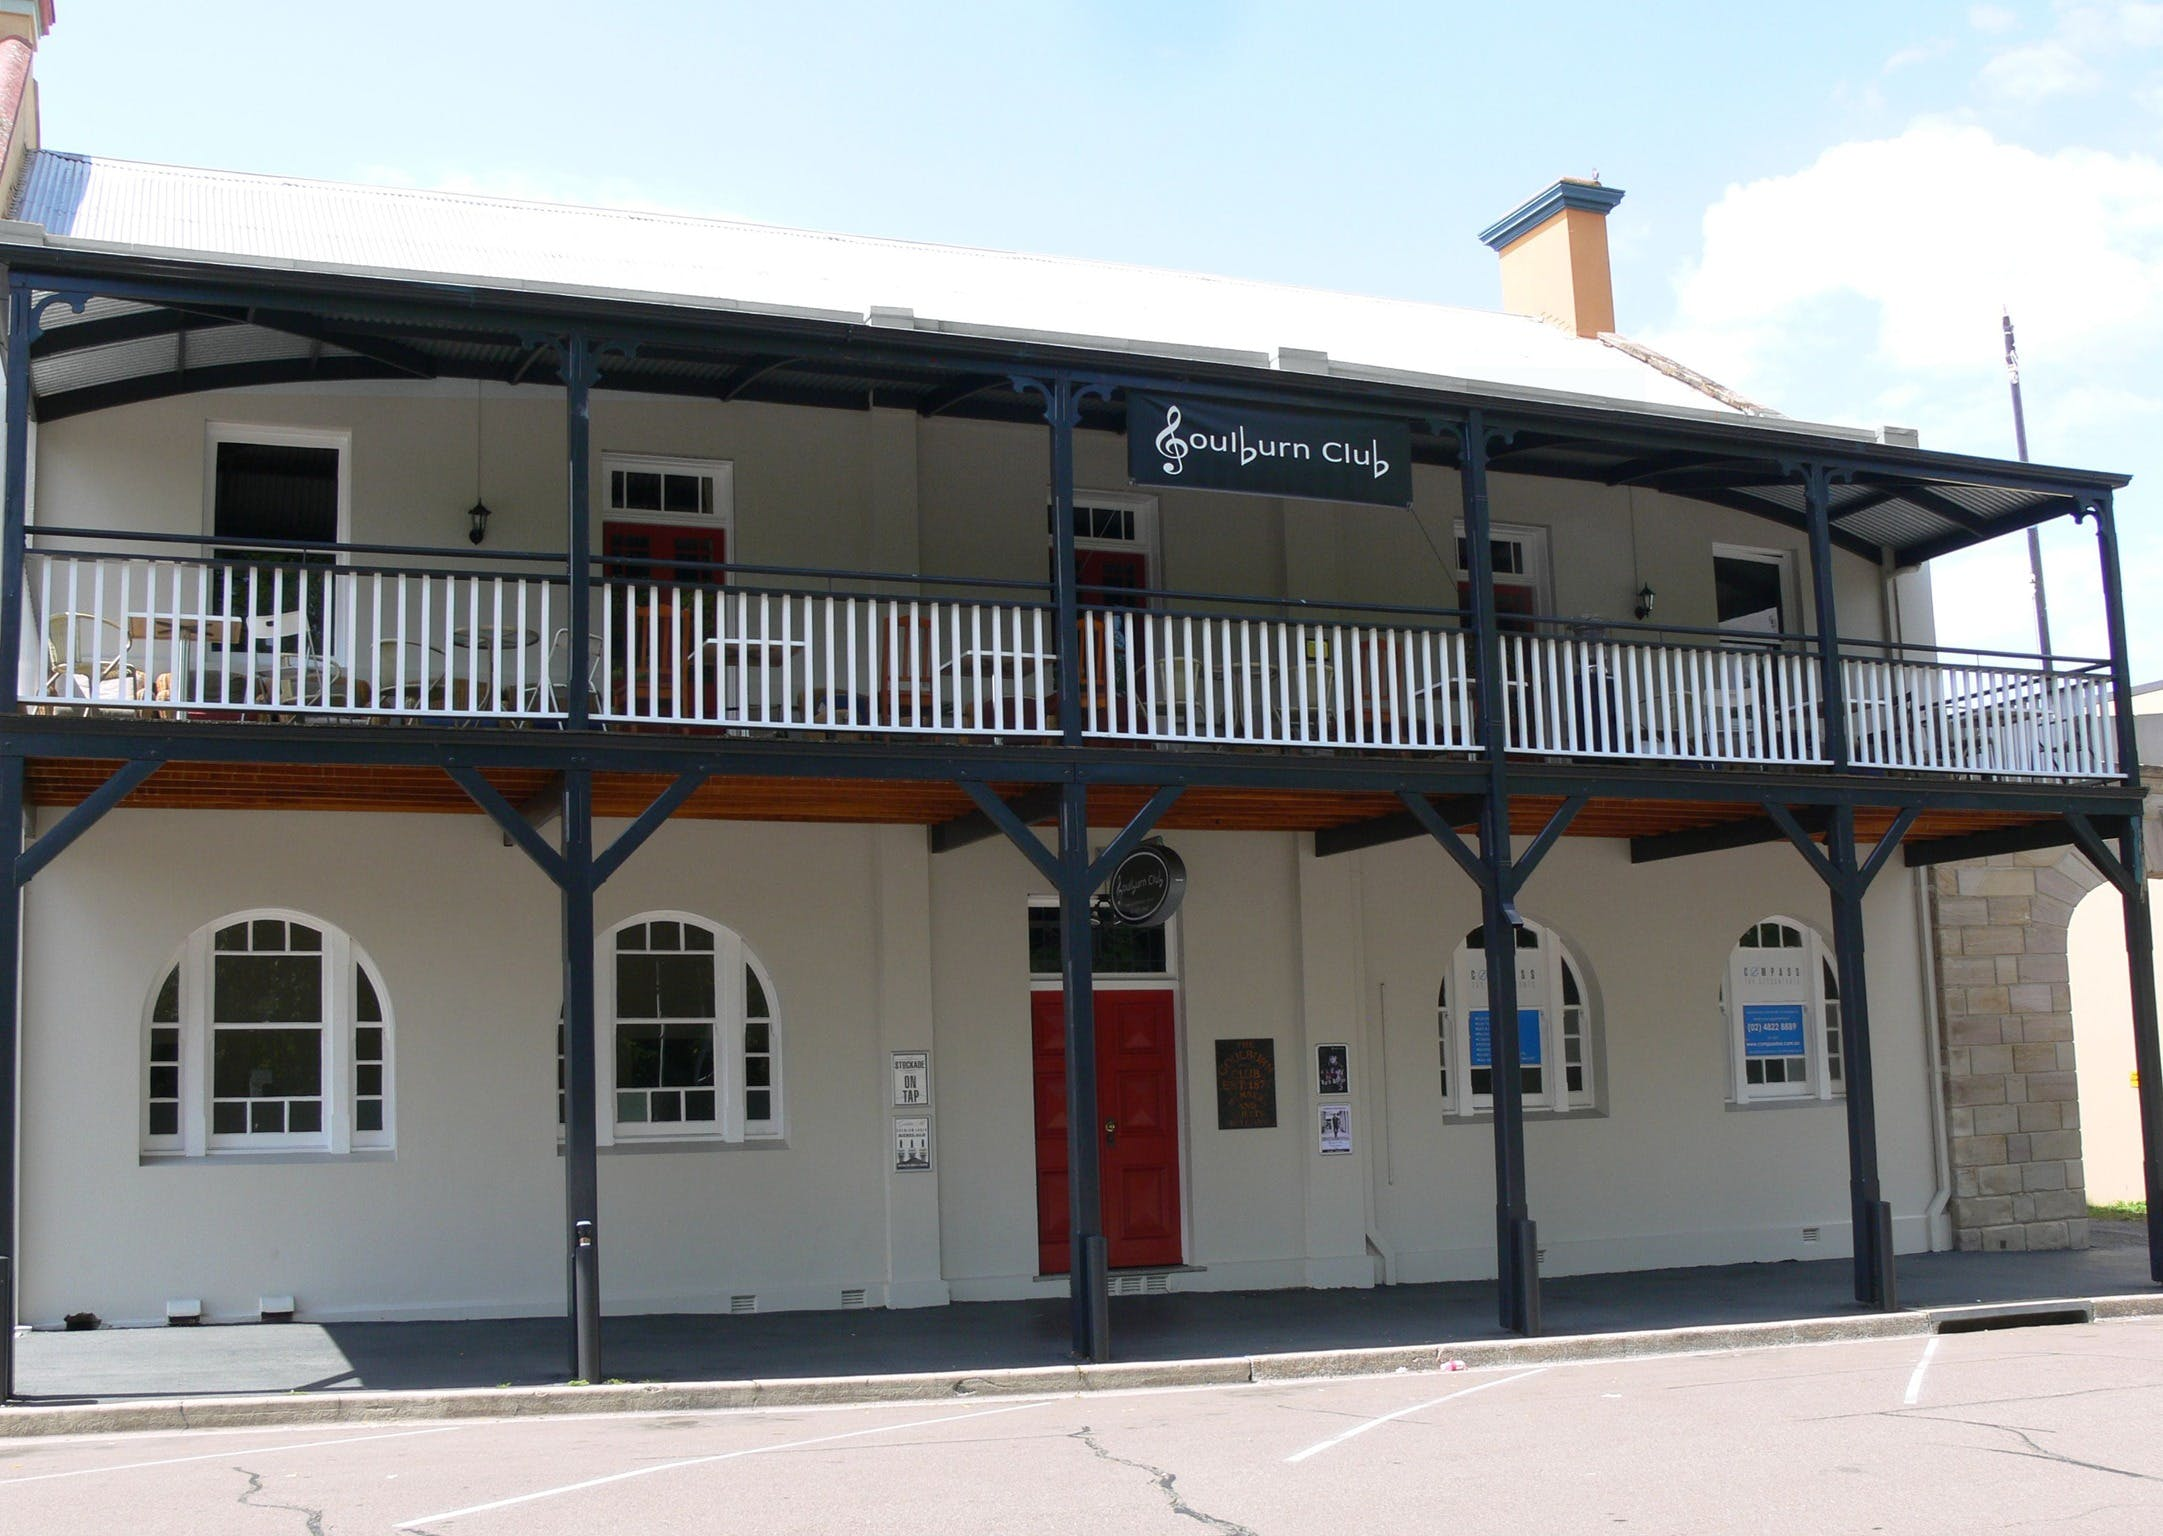 Open Mic Night at the Goulburn Club - Sydney Tourism